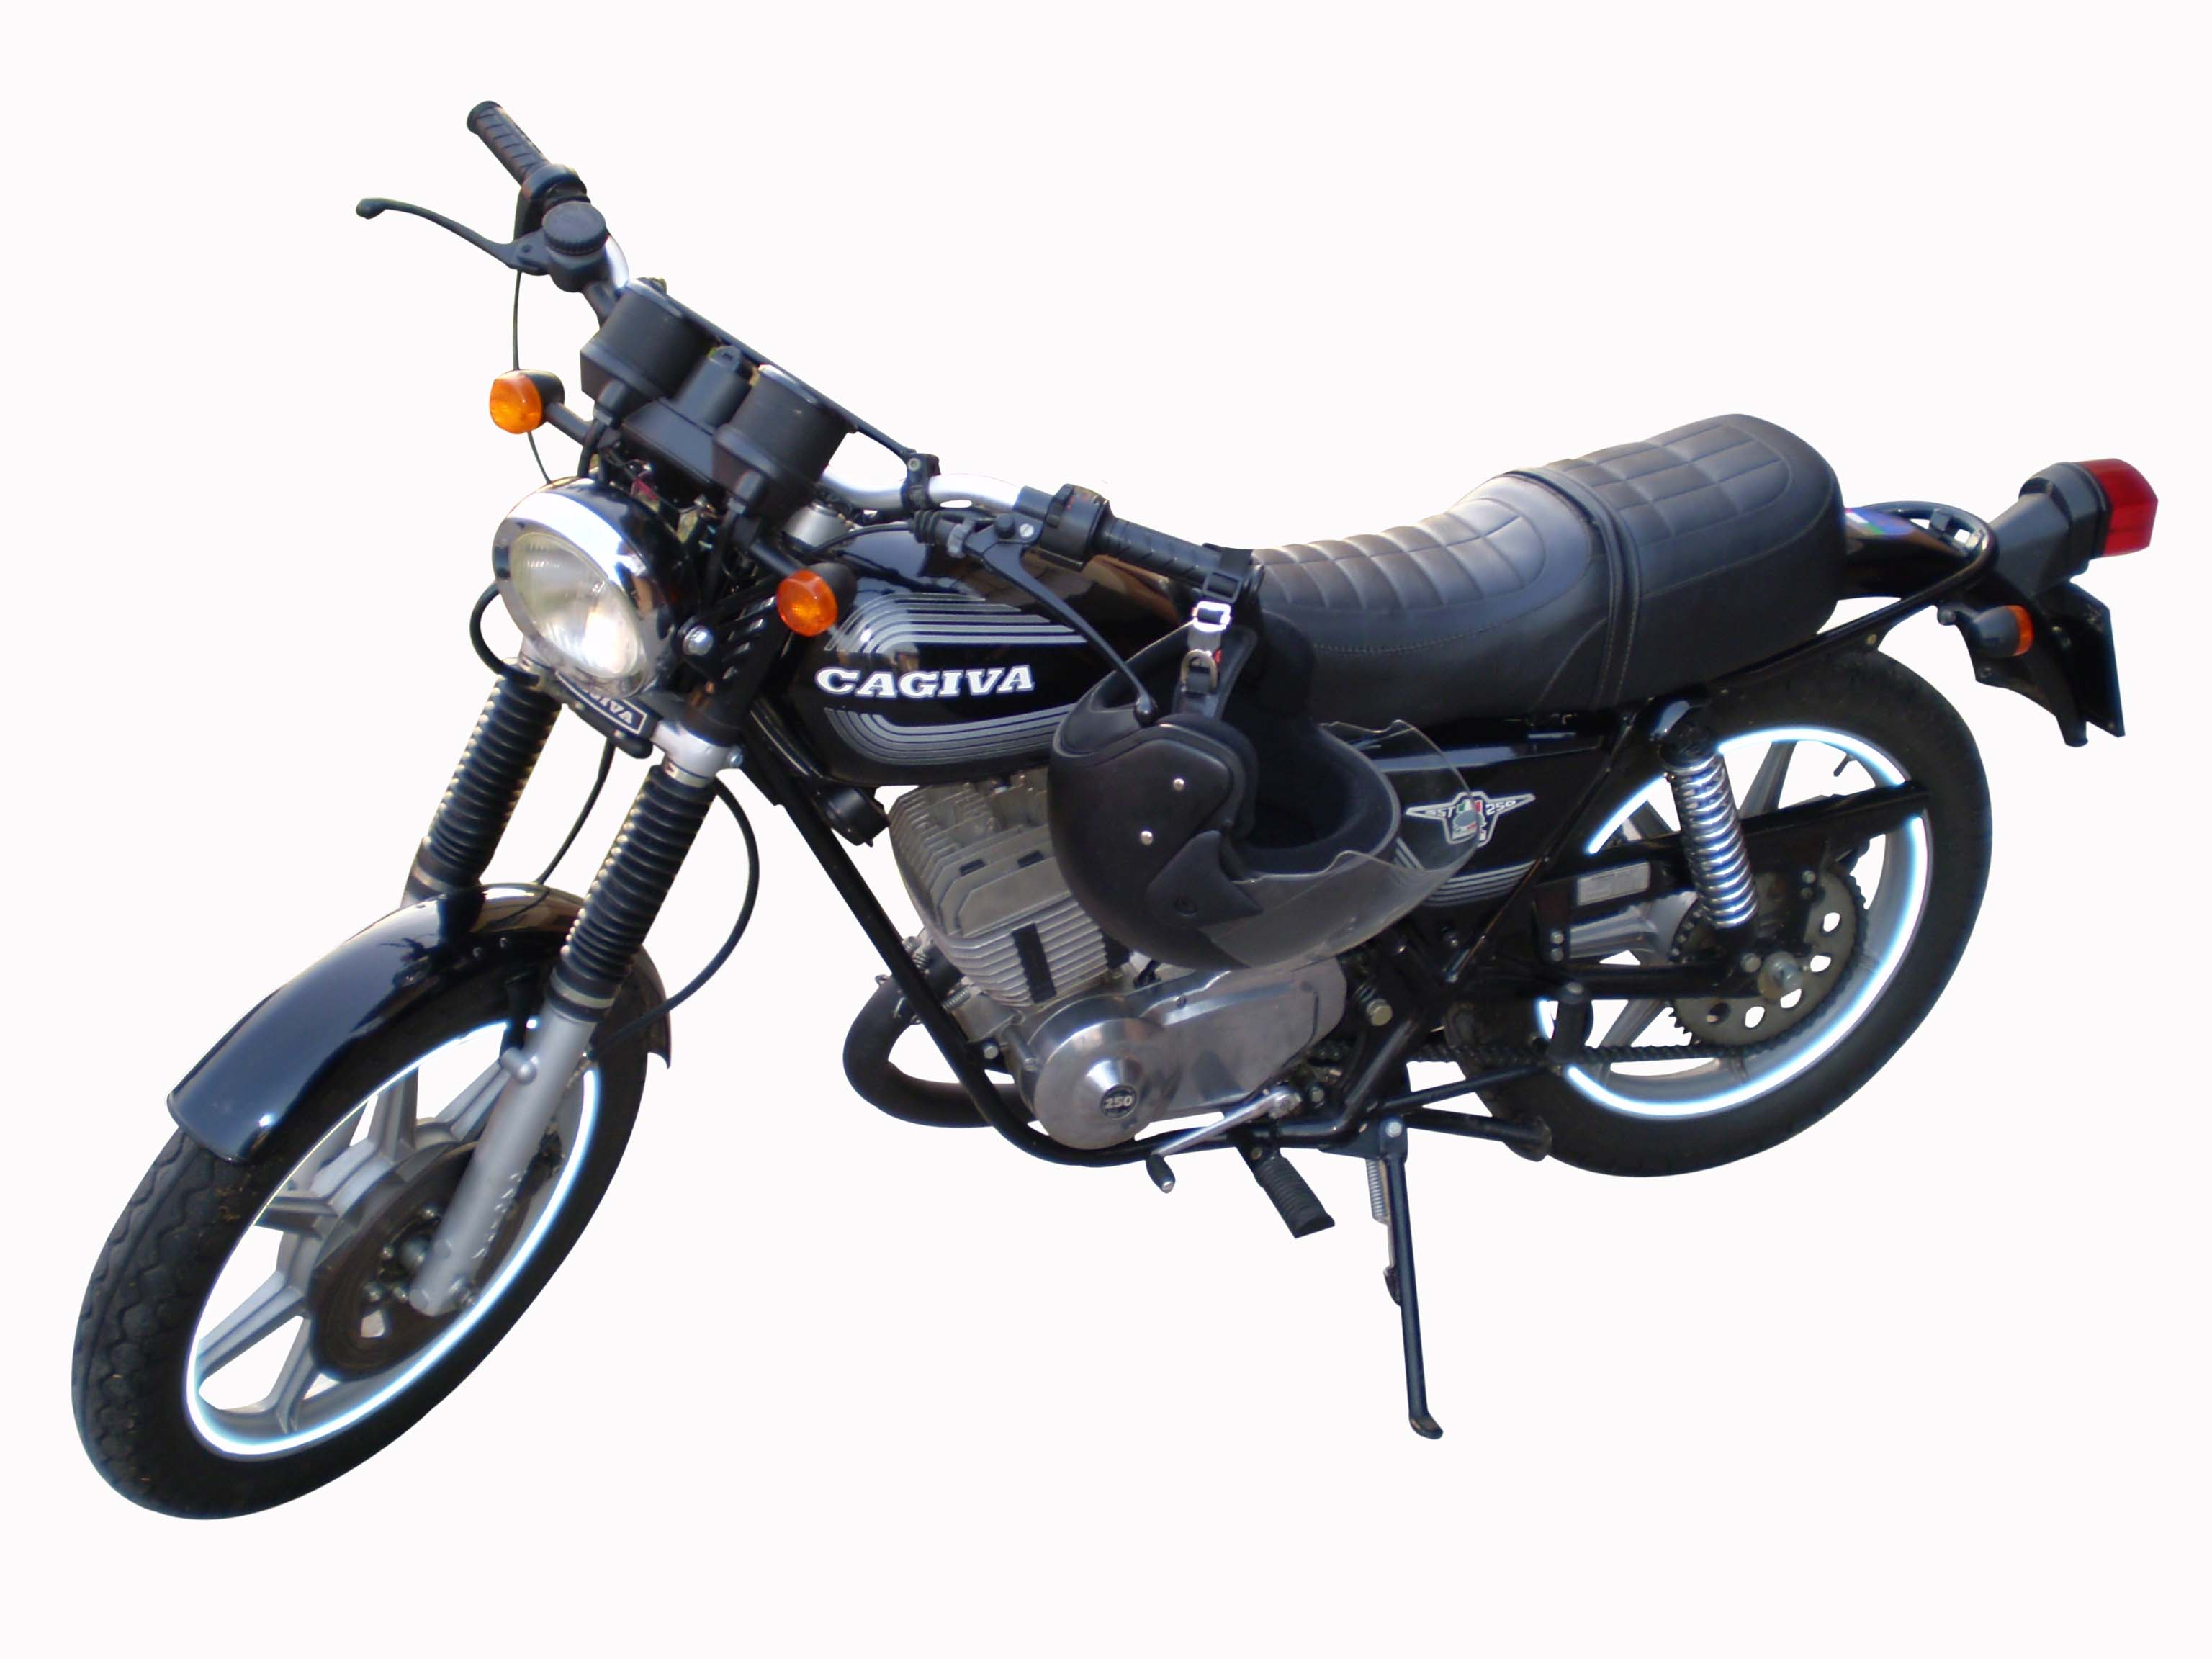 Benelli 125 SE 1979 images #75912